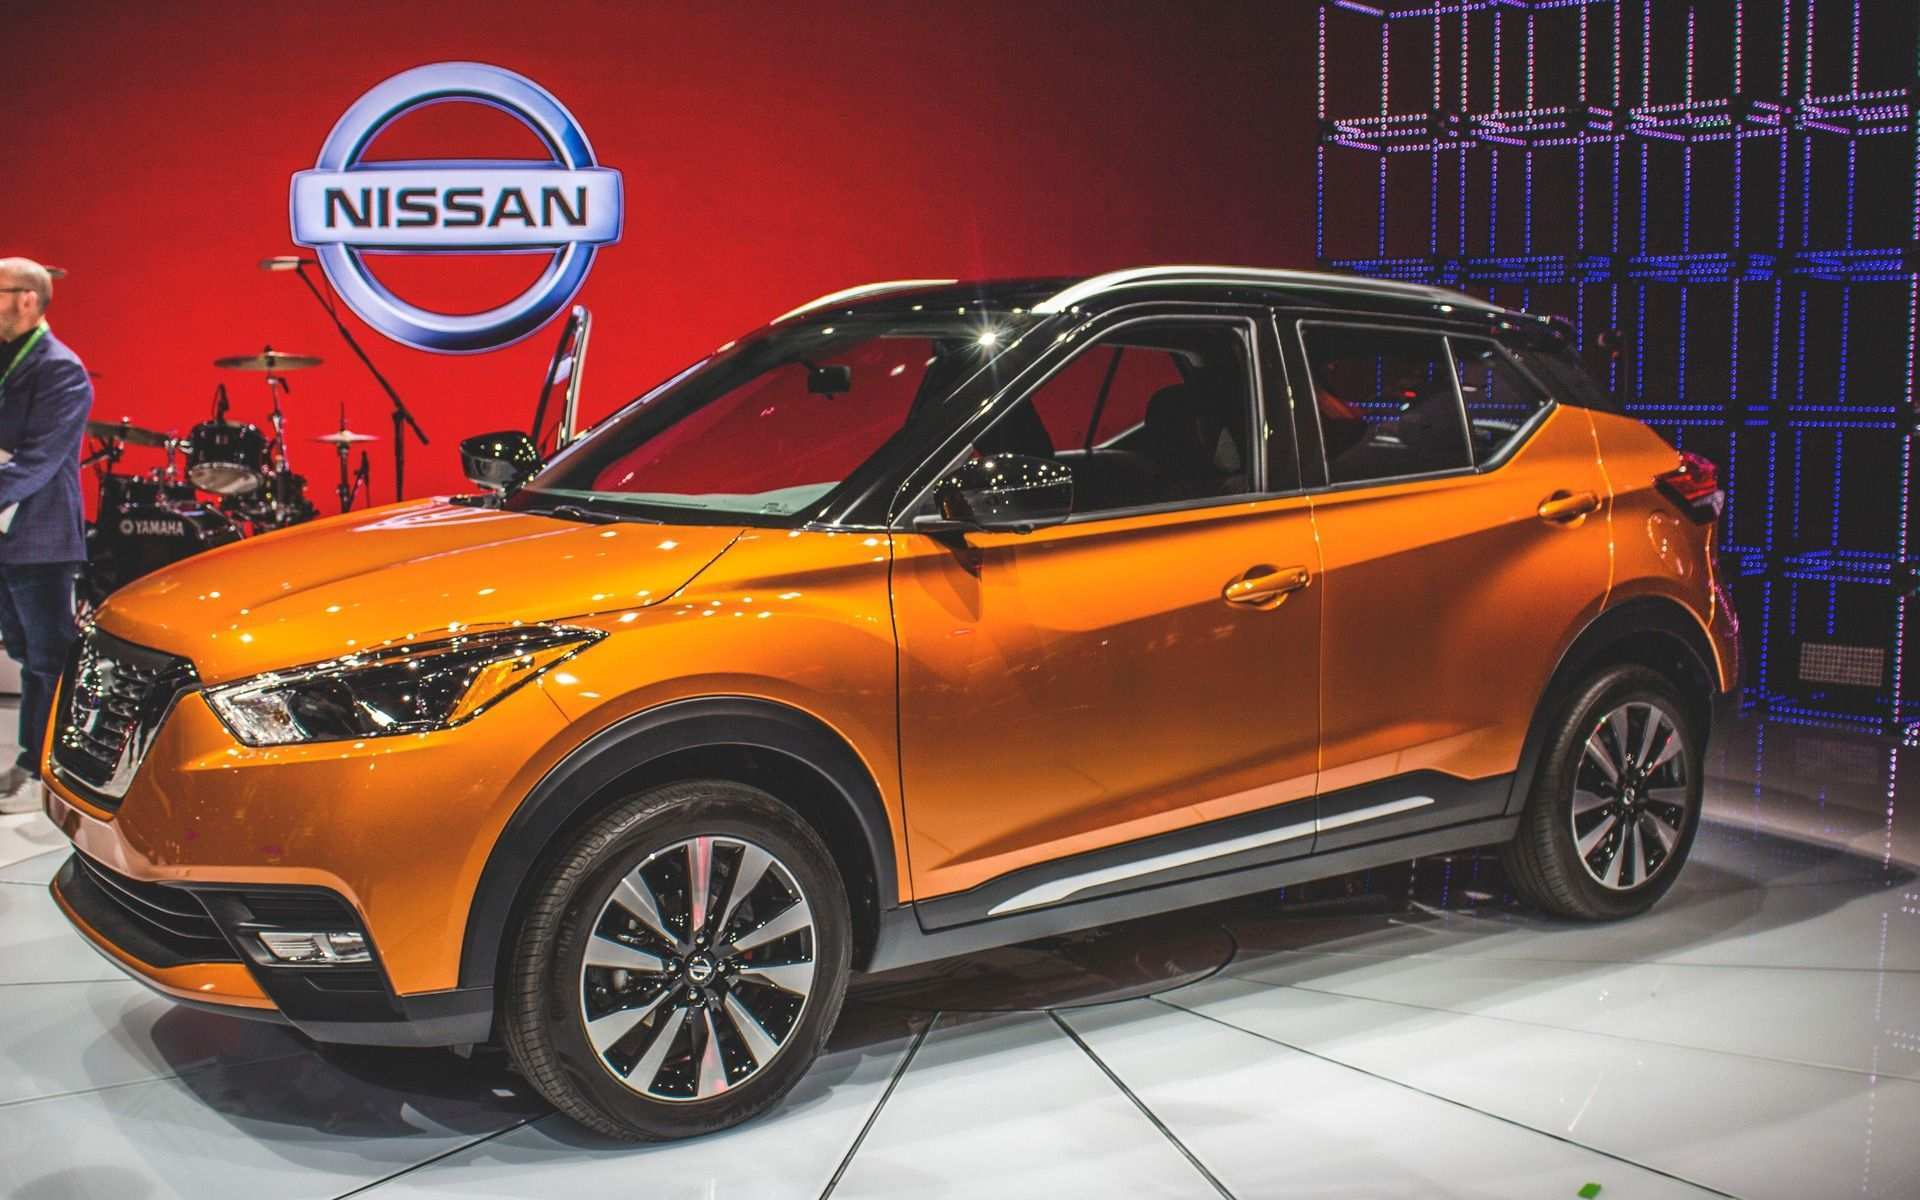 34 Gallery of Best Nissan 2019 Crossover Release Date And Specs History by Best Nissan 2019 Crossover Release Date And Specs